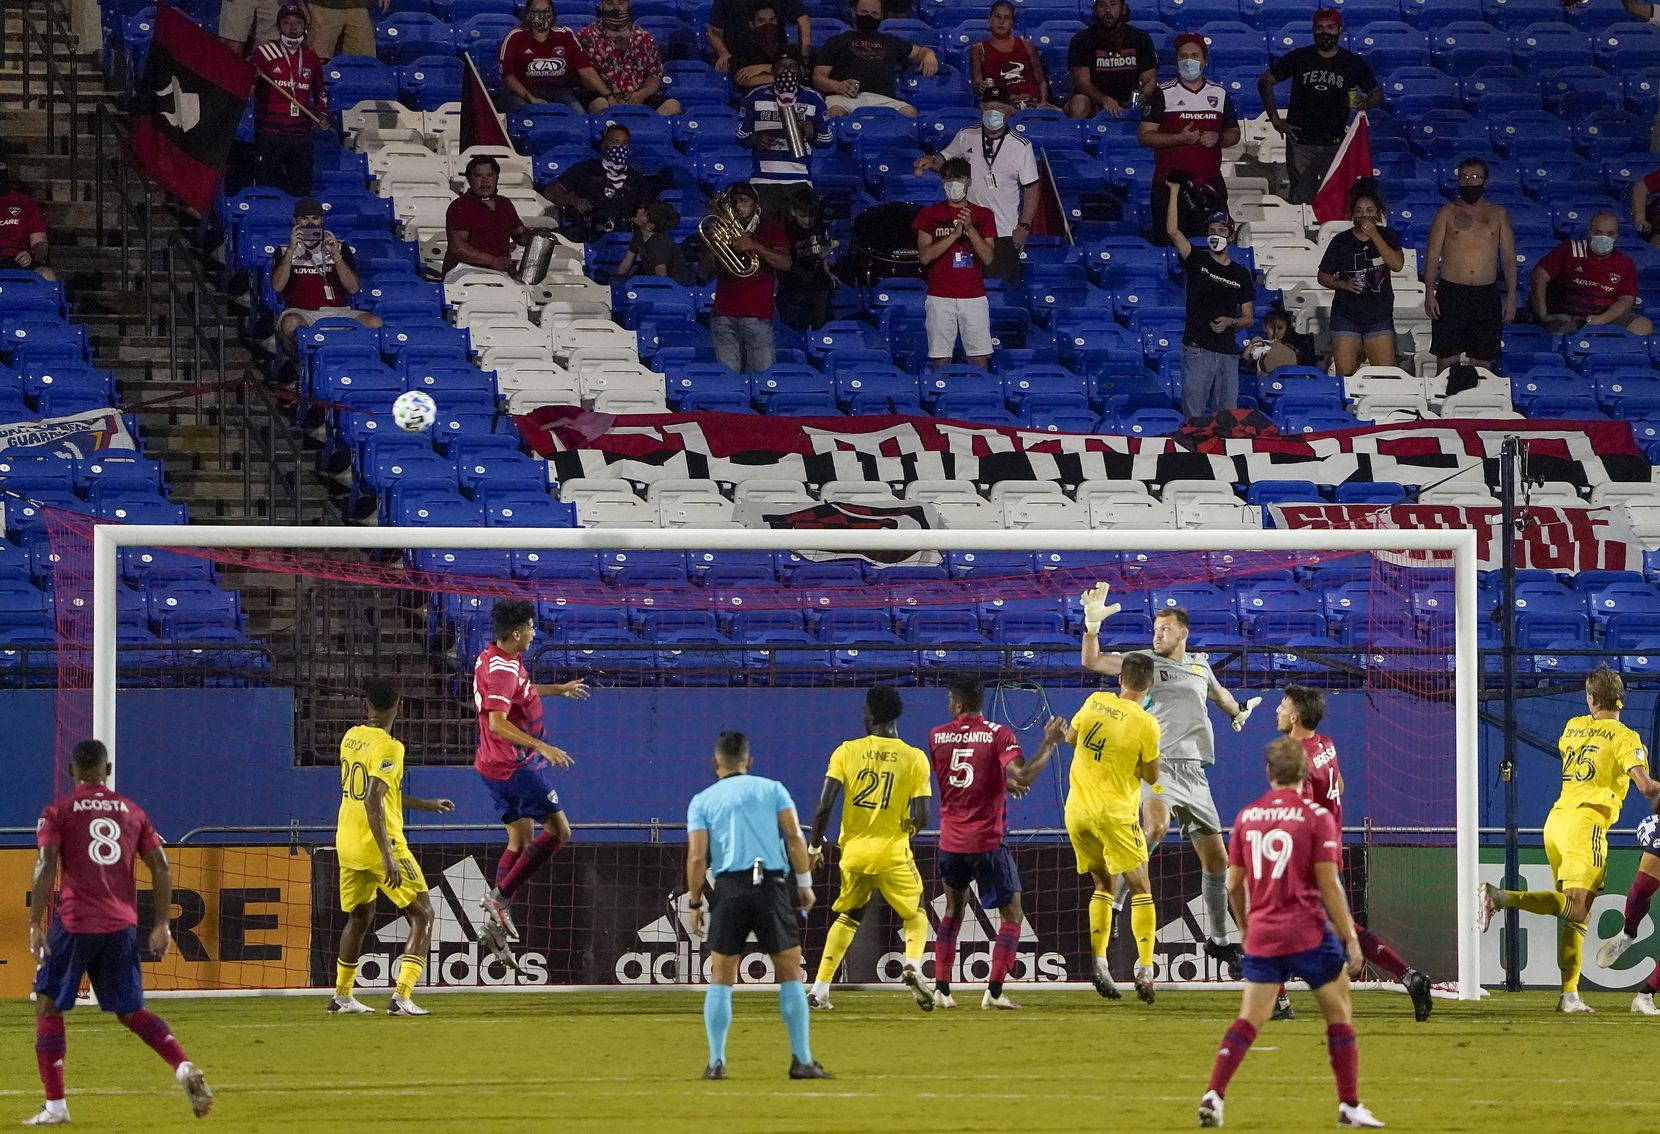 Socially distant FC Dallas supporters watch a corner kick sail over the head of forward Ricardo Pepi (16) in front of the Nashville SC goal during the second half of an MLS soccer game at Toyota Stadium on Wednesday, Aug. 12, 2020, in Frisco, Texas. (Smiley N. Pool/The Dallas Morning News)